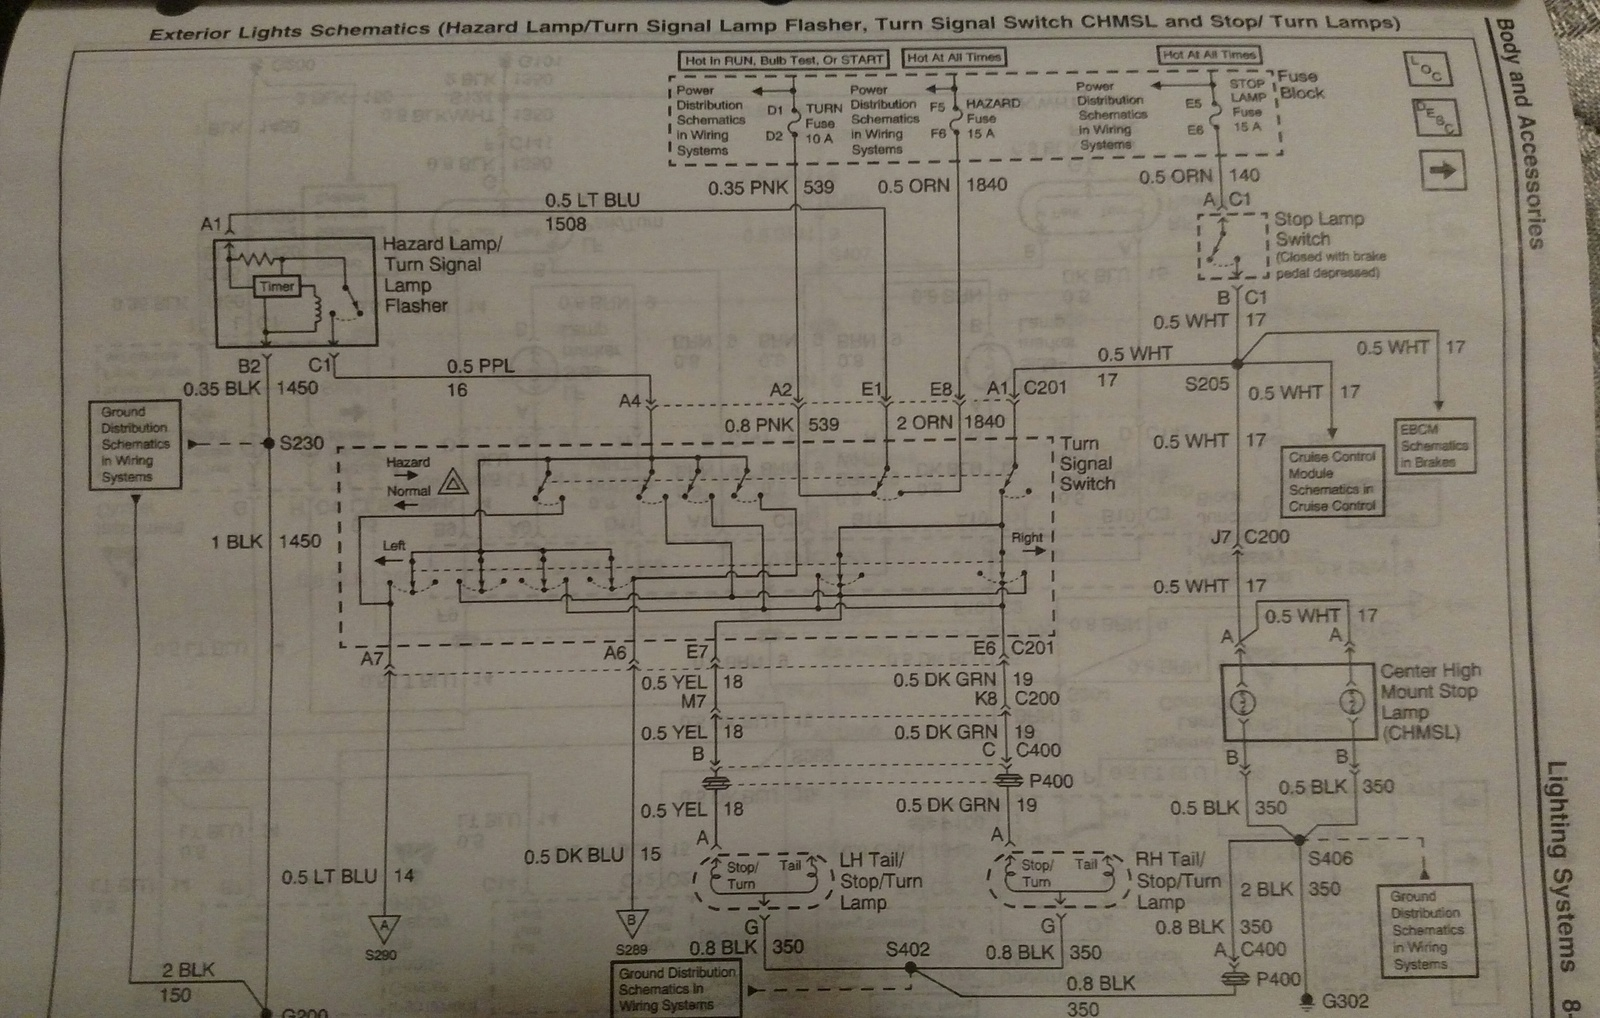 pontiac grand prix questions i have a 2002 pontiac grand prix 2002 pontiac grand prix wiring-diagram here's the wiring diagram you're looking at the yellow wire on the left socket and the dark green wire on the right socket hth jim